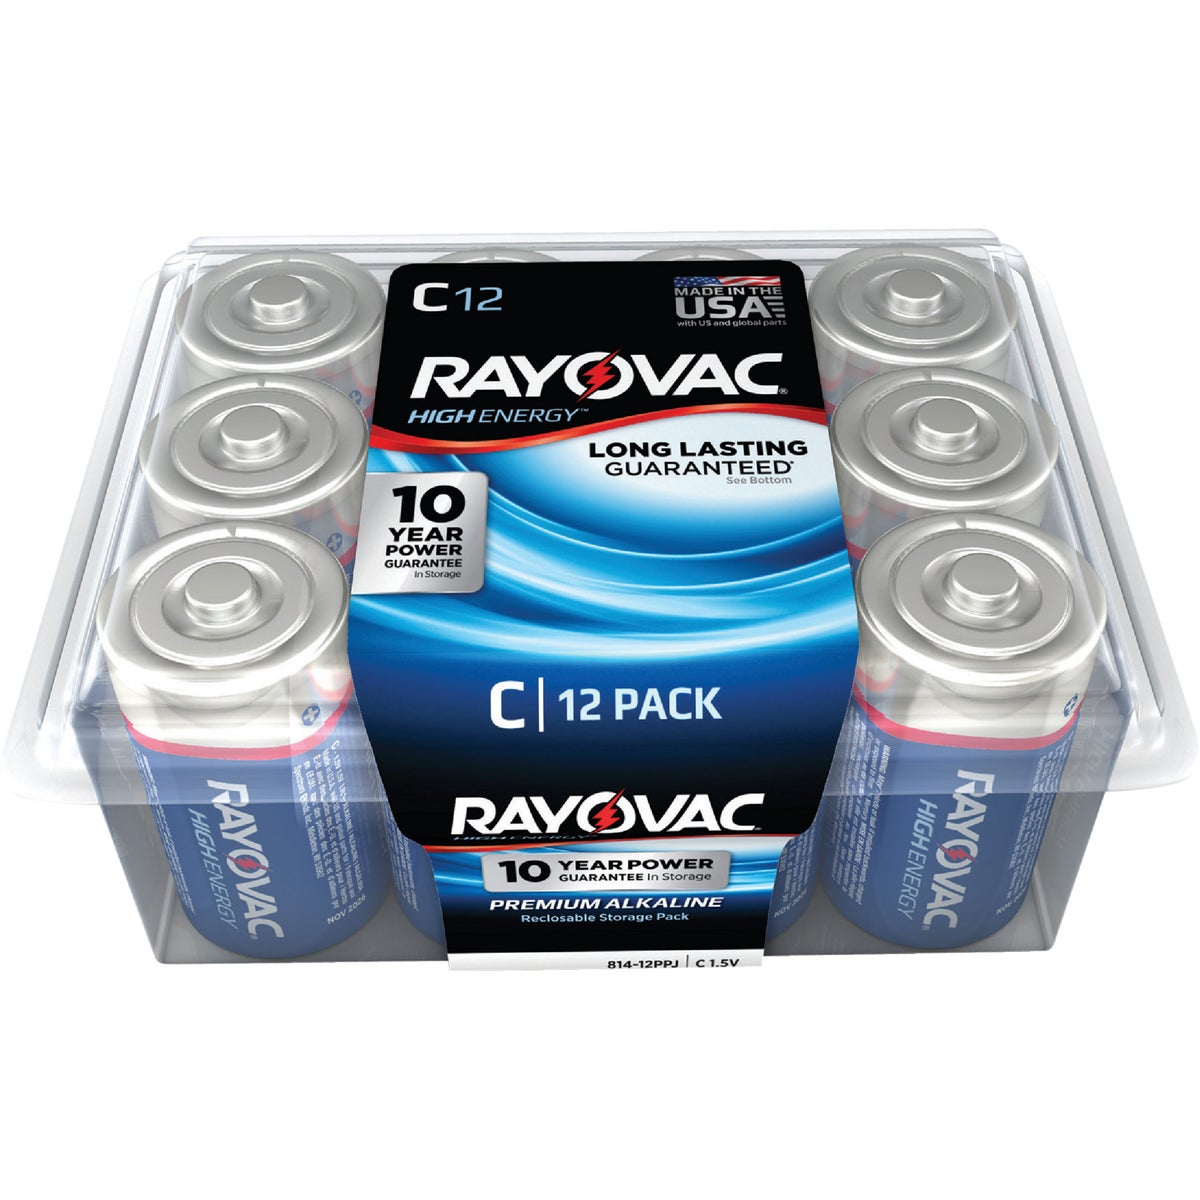 PROPACK C 12PK - 814-12PPF by Ray O Vac